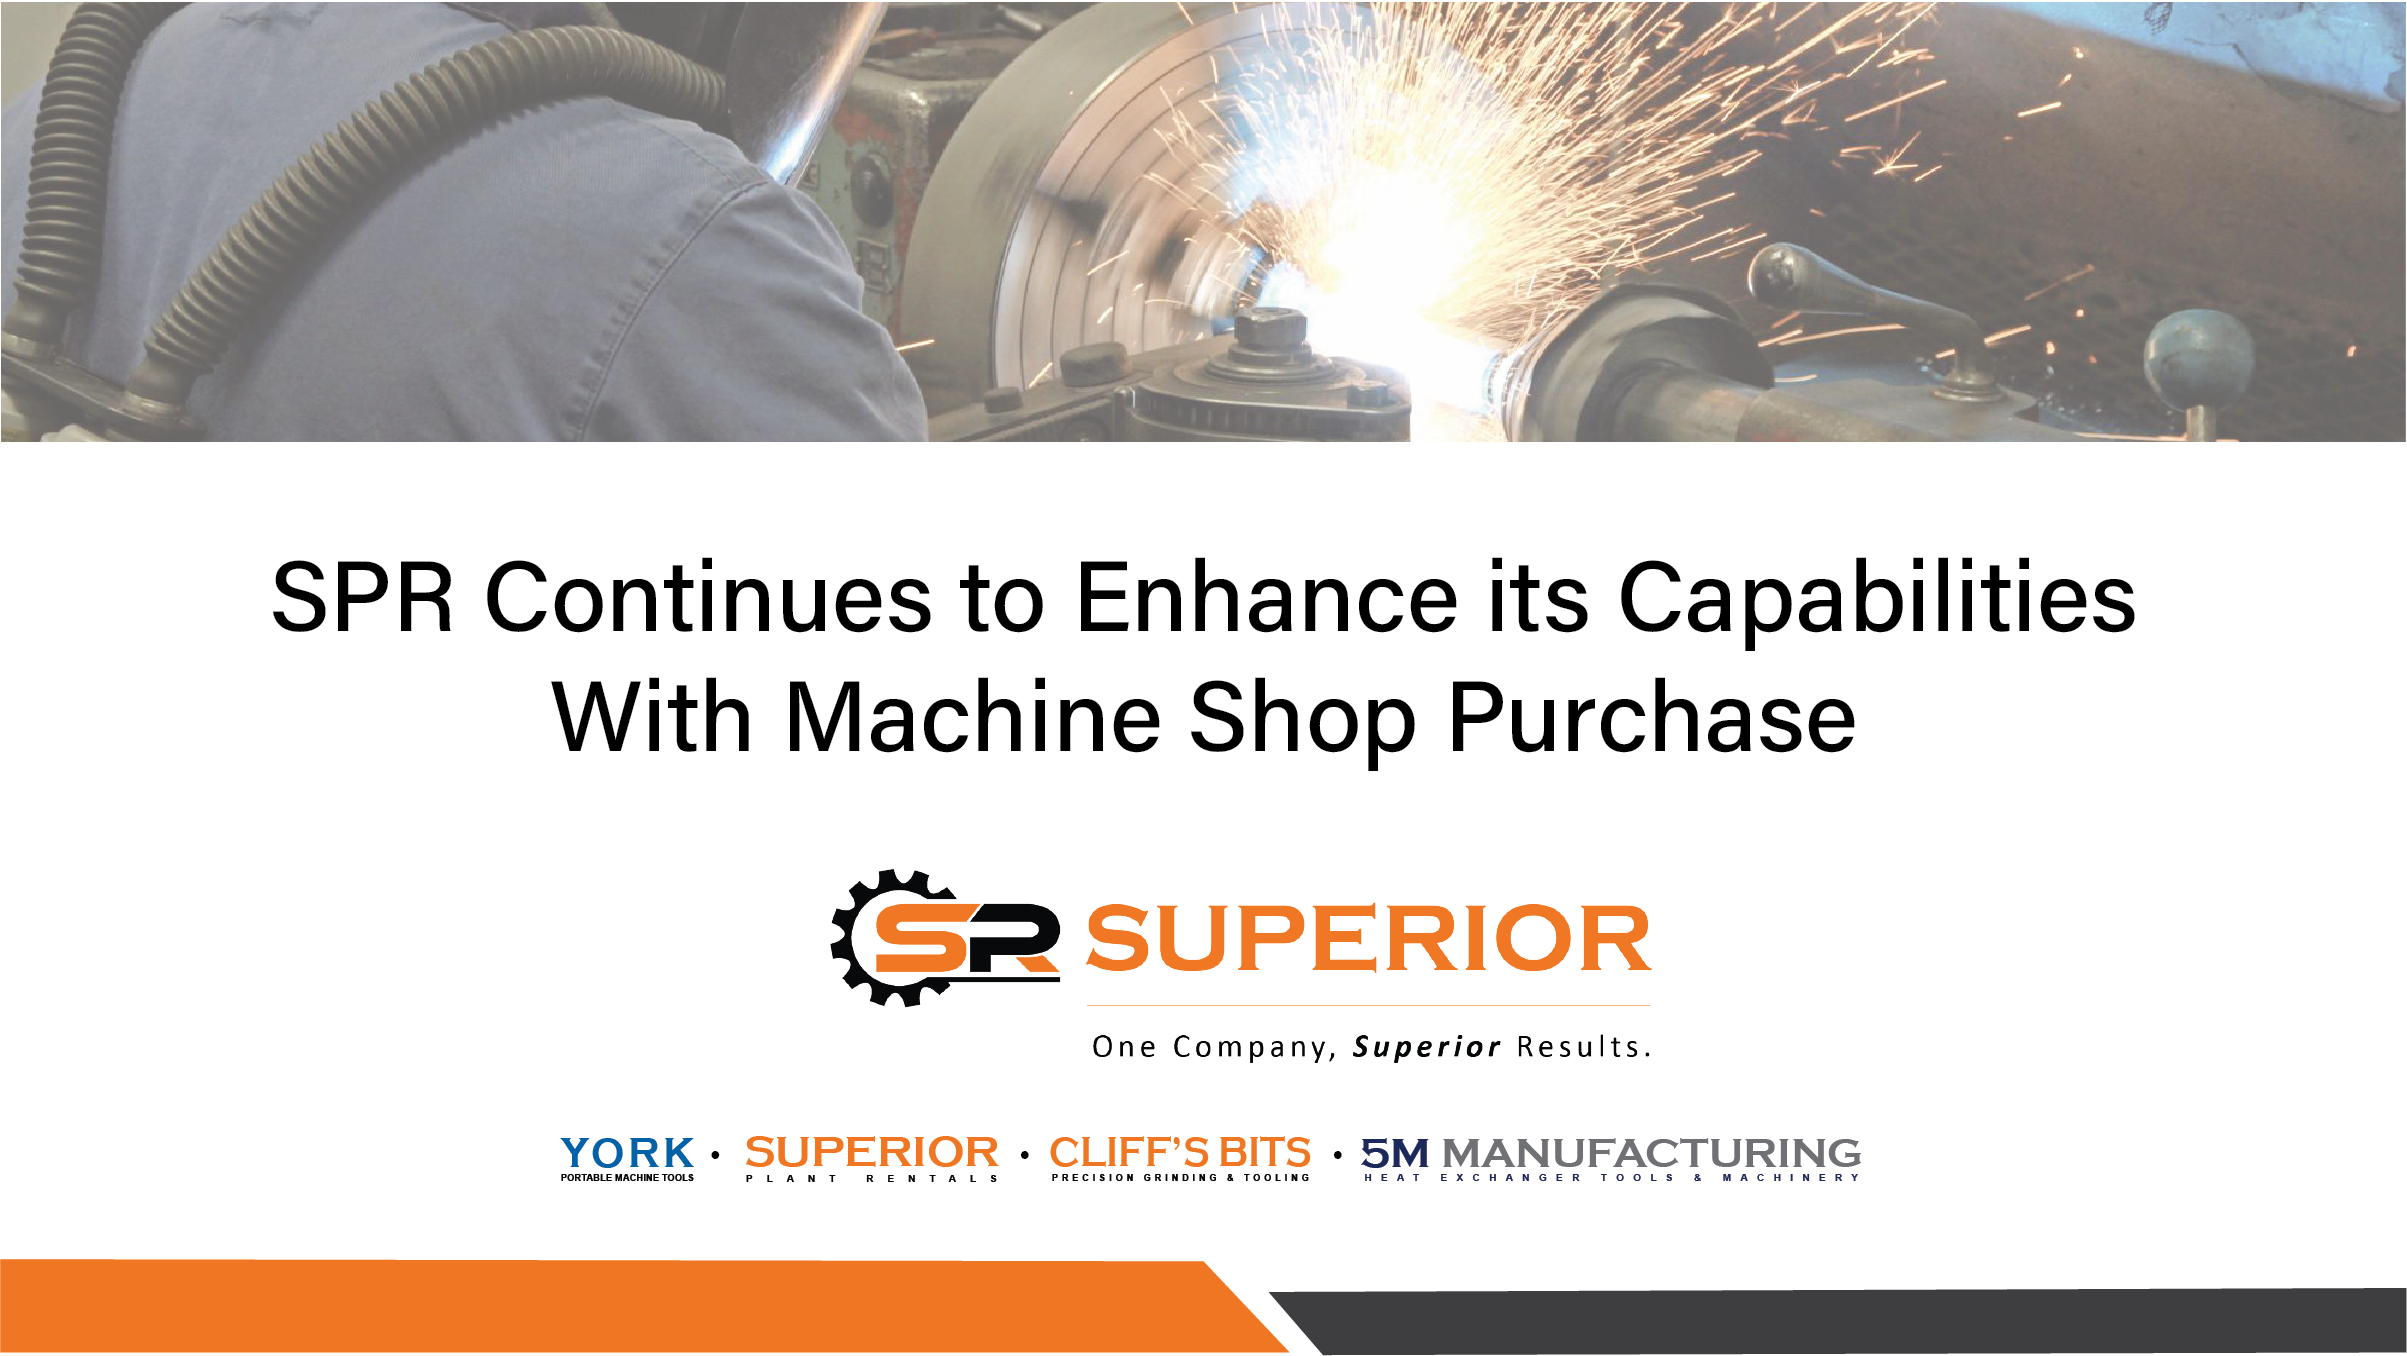 SPR Enhances Capabilities with Machine Shop Purchase